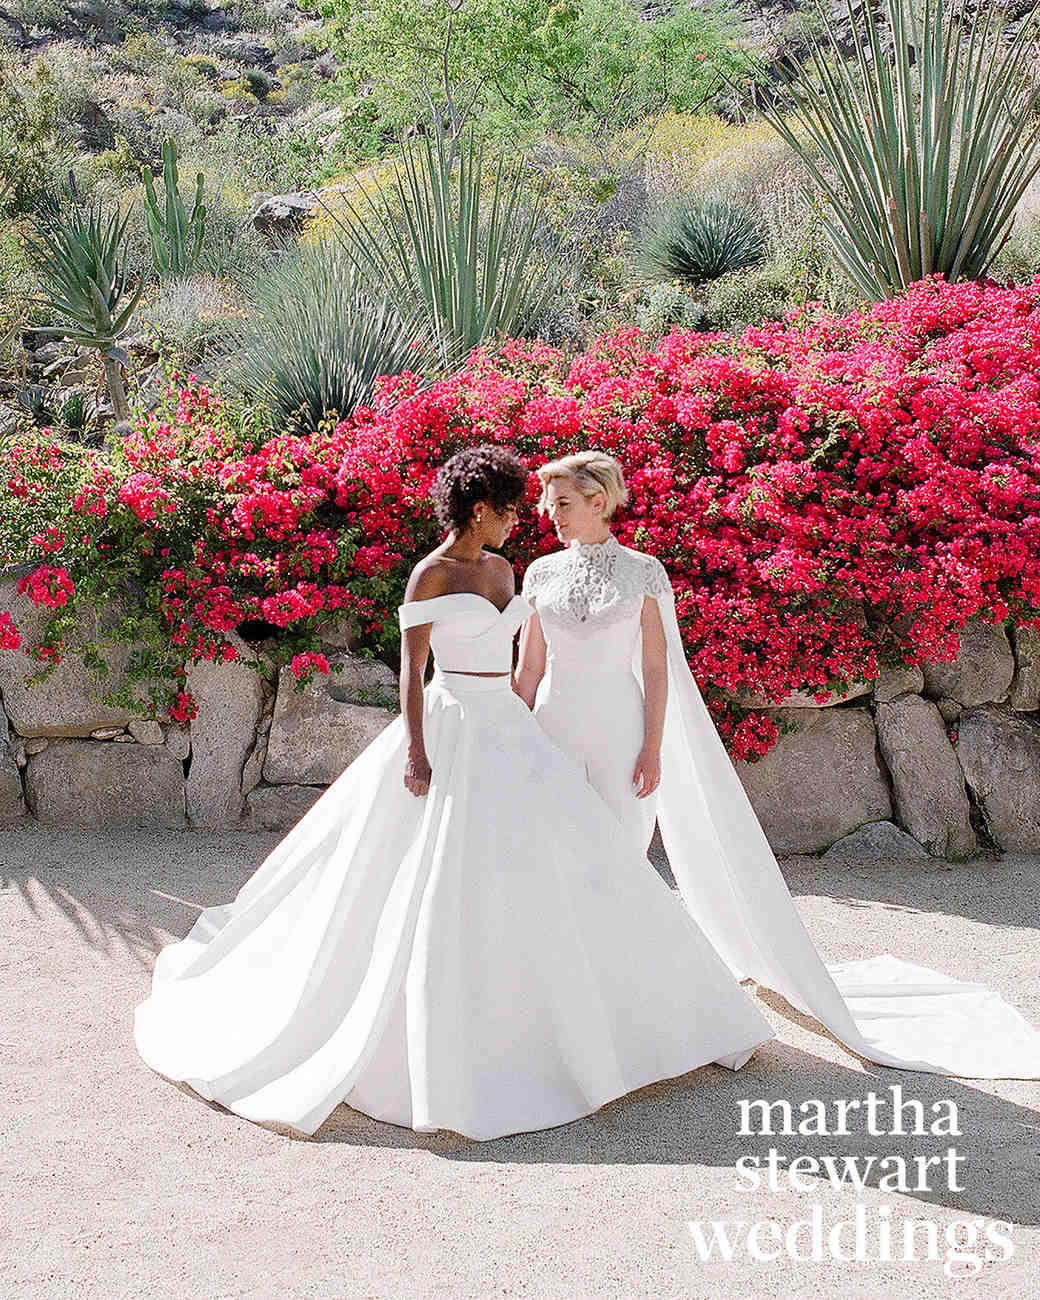 Whimsical weddings martha stewart weddings samira wiley lauren morelli wedding brides junglespirit Choice Image